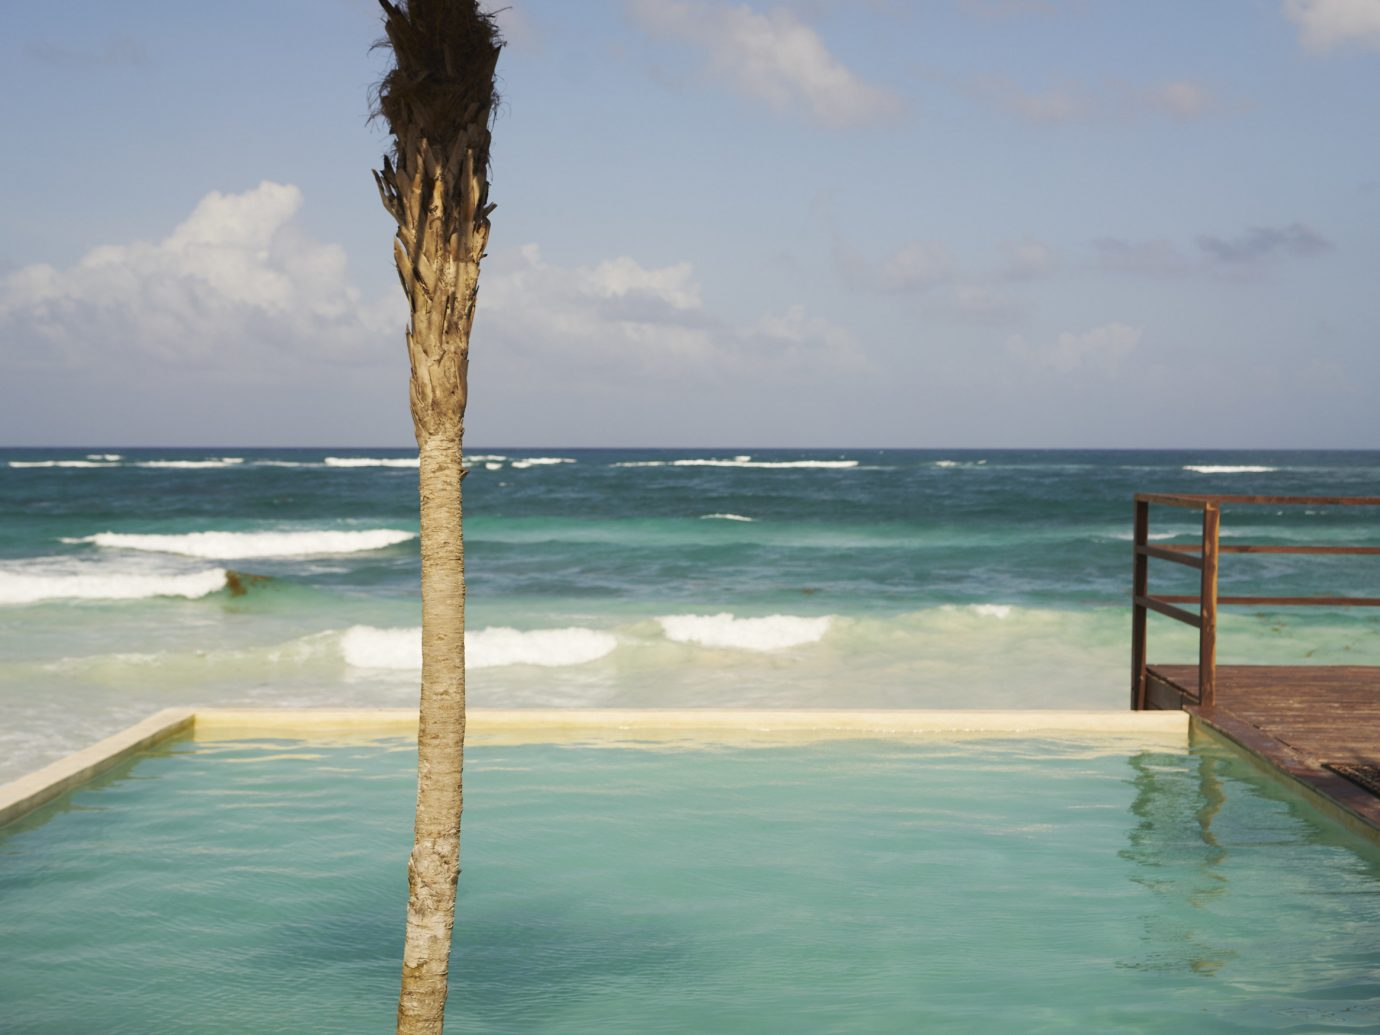 Boutique Hotels Hotels Mexico Tulum water sky outdoor Sea body of water shore tropics caribbean arecales palm tree Ocean Beach coastal and oceanic landforms plant vacation tree Coast Nature Resort swimming pool horizon palm Lagoon bay cloud overlooking Island sandy